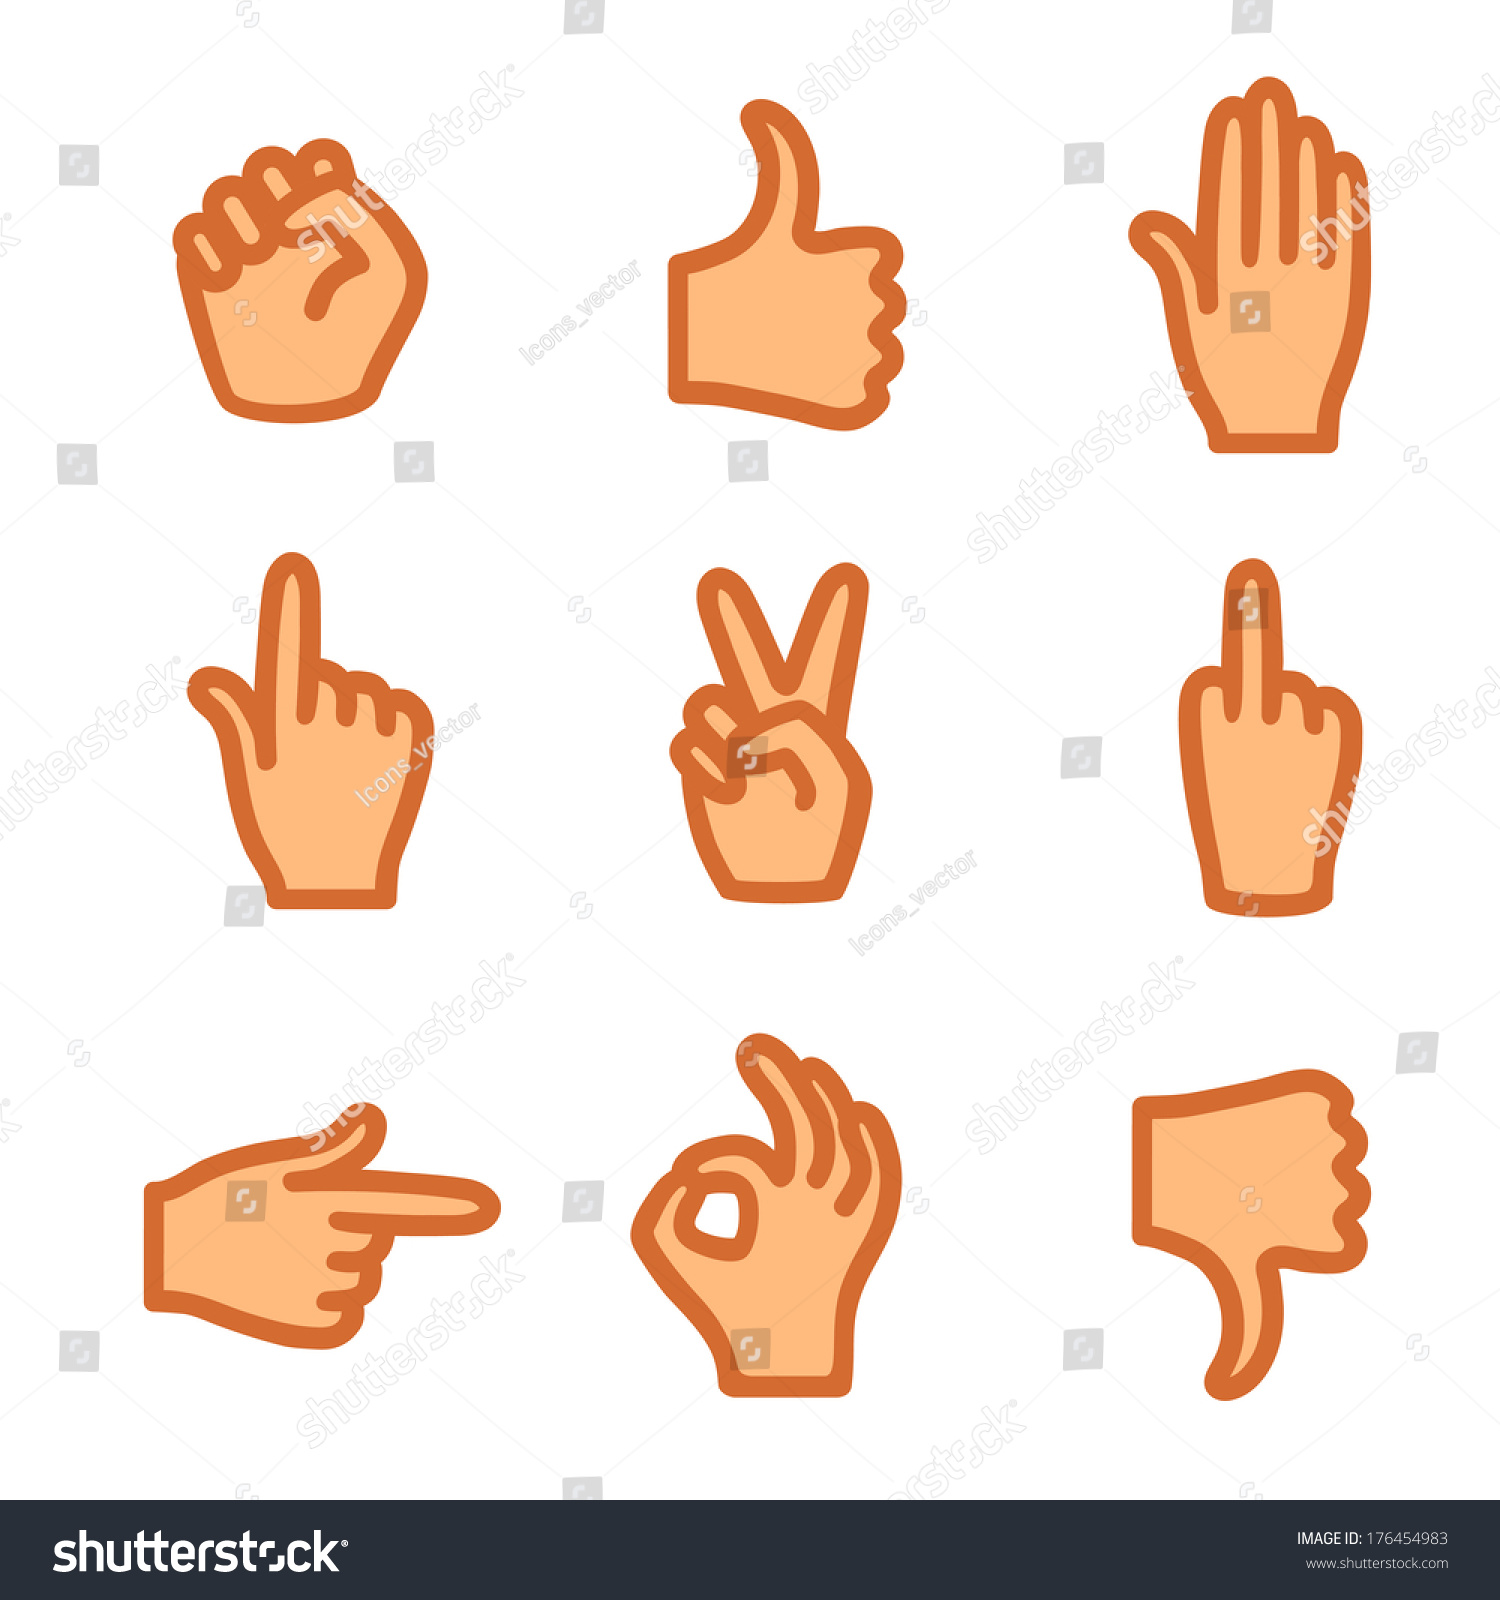 Hand Gesture  Free pictures on Pixabay